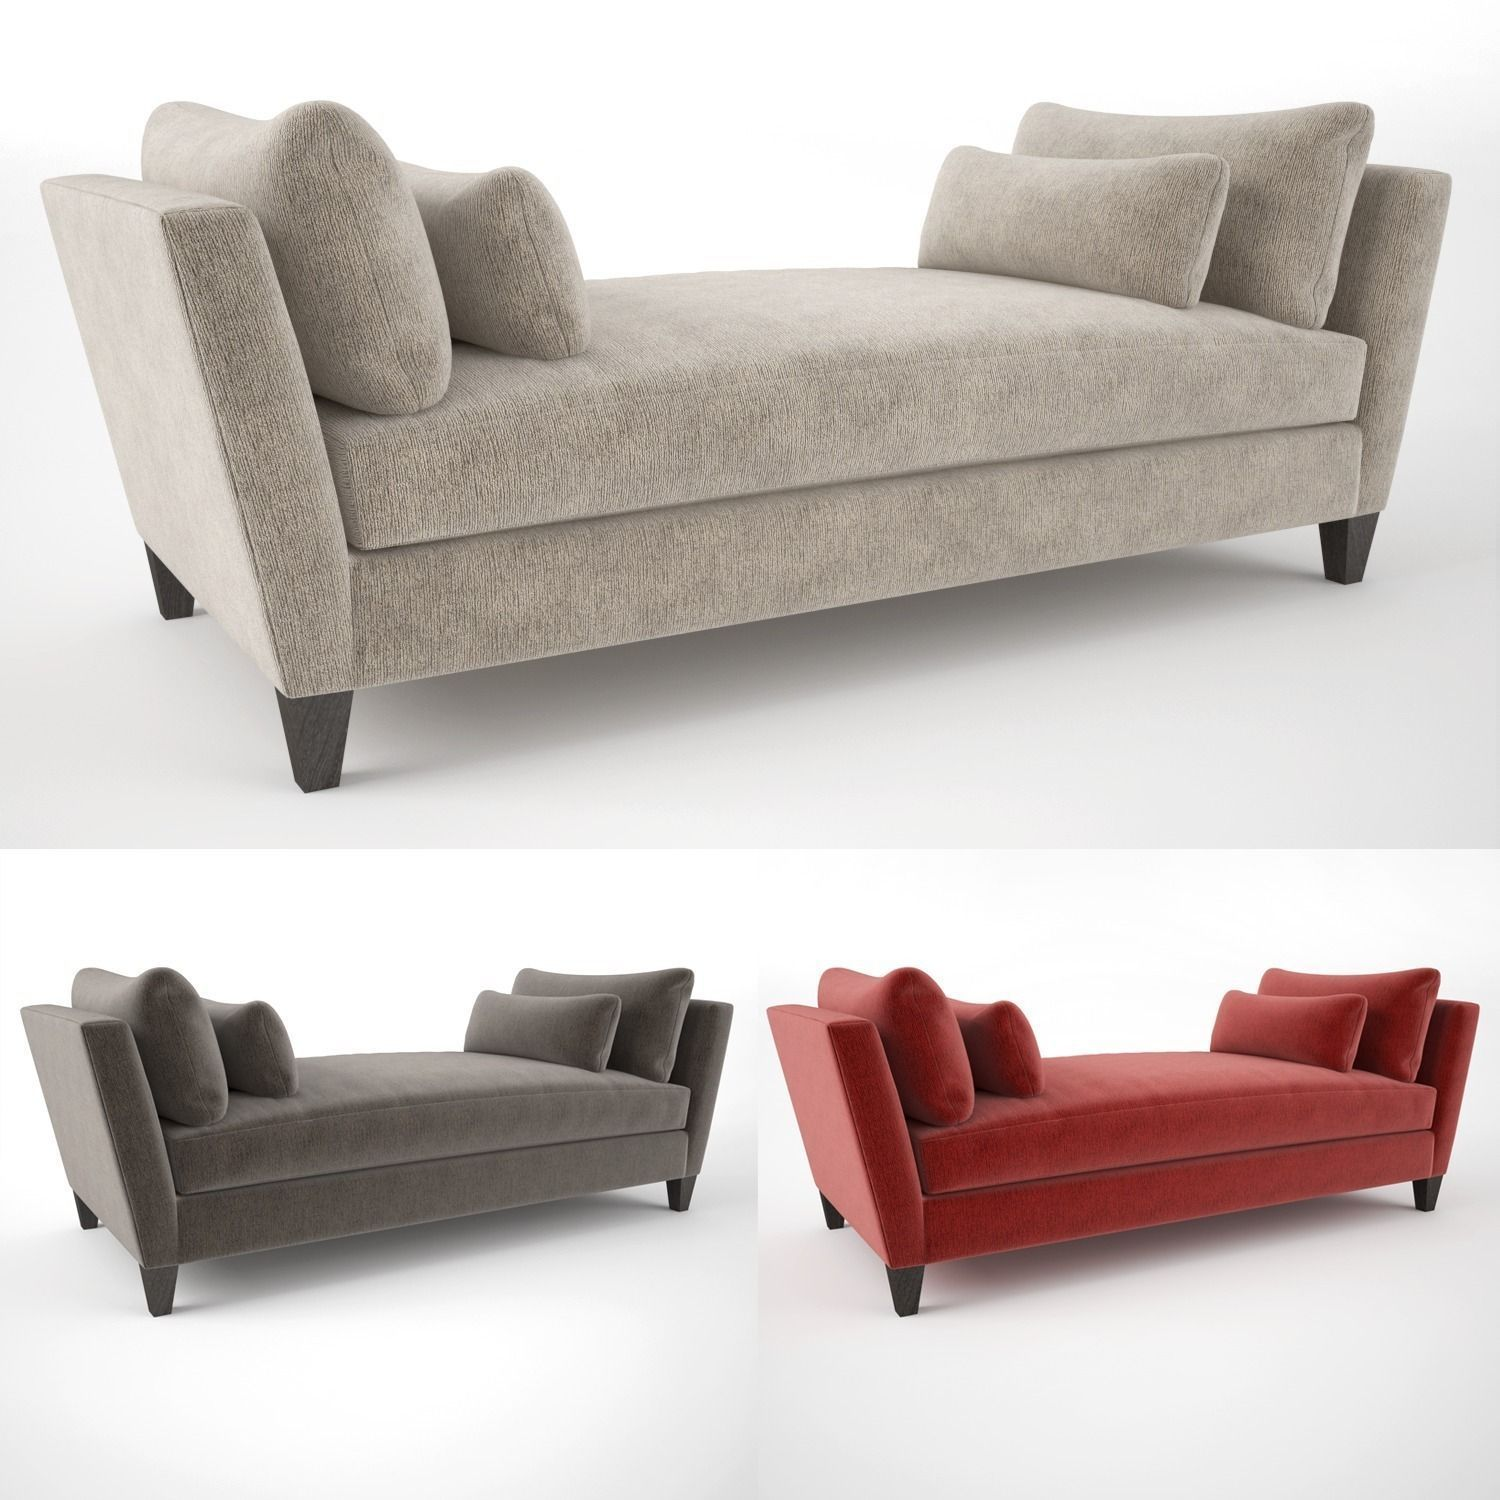 Surprising Crate And Barrel Marlowe Daybed Sofa 3D Model Andrewgaddart Wooden Chair Designs For Living Room Andrewgaddartcom